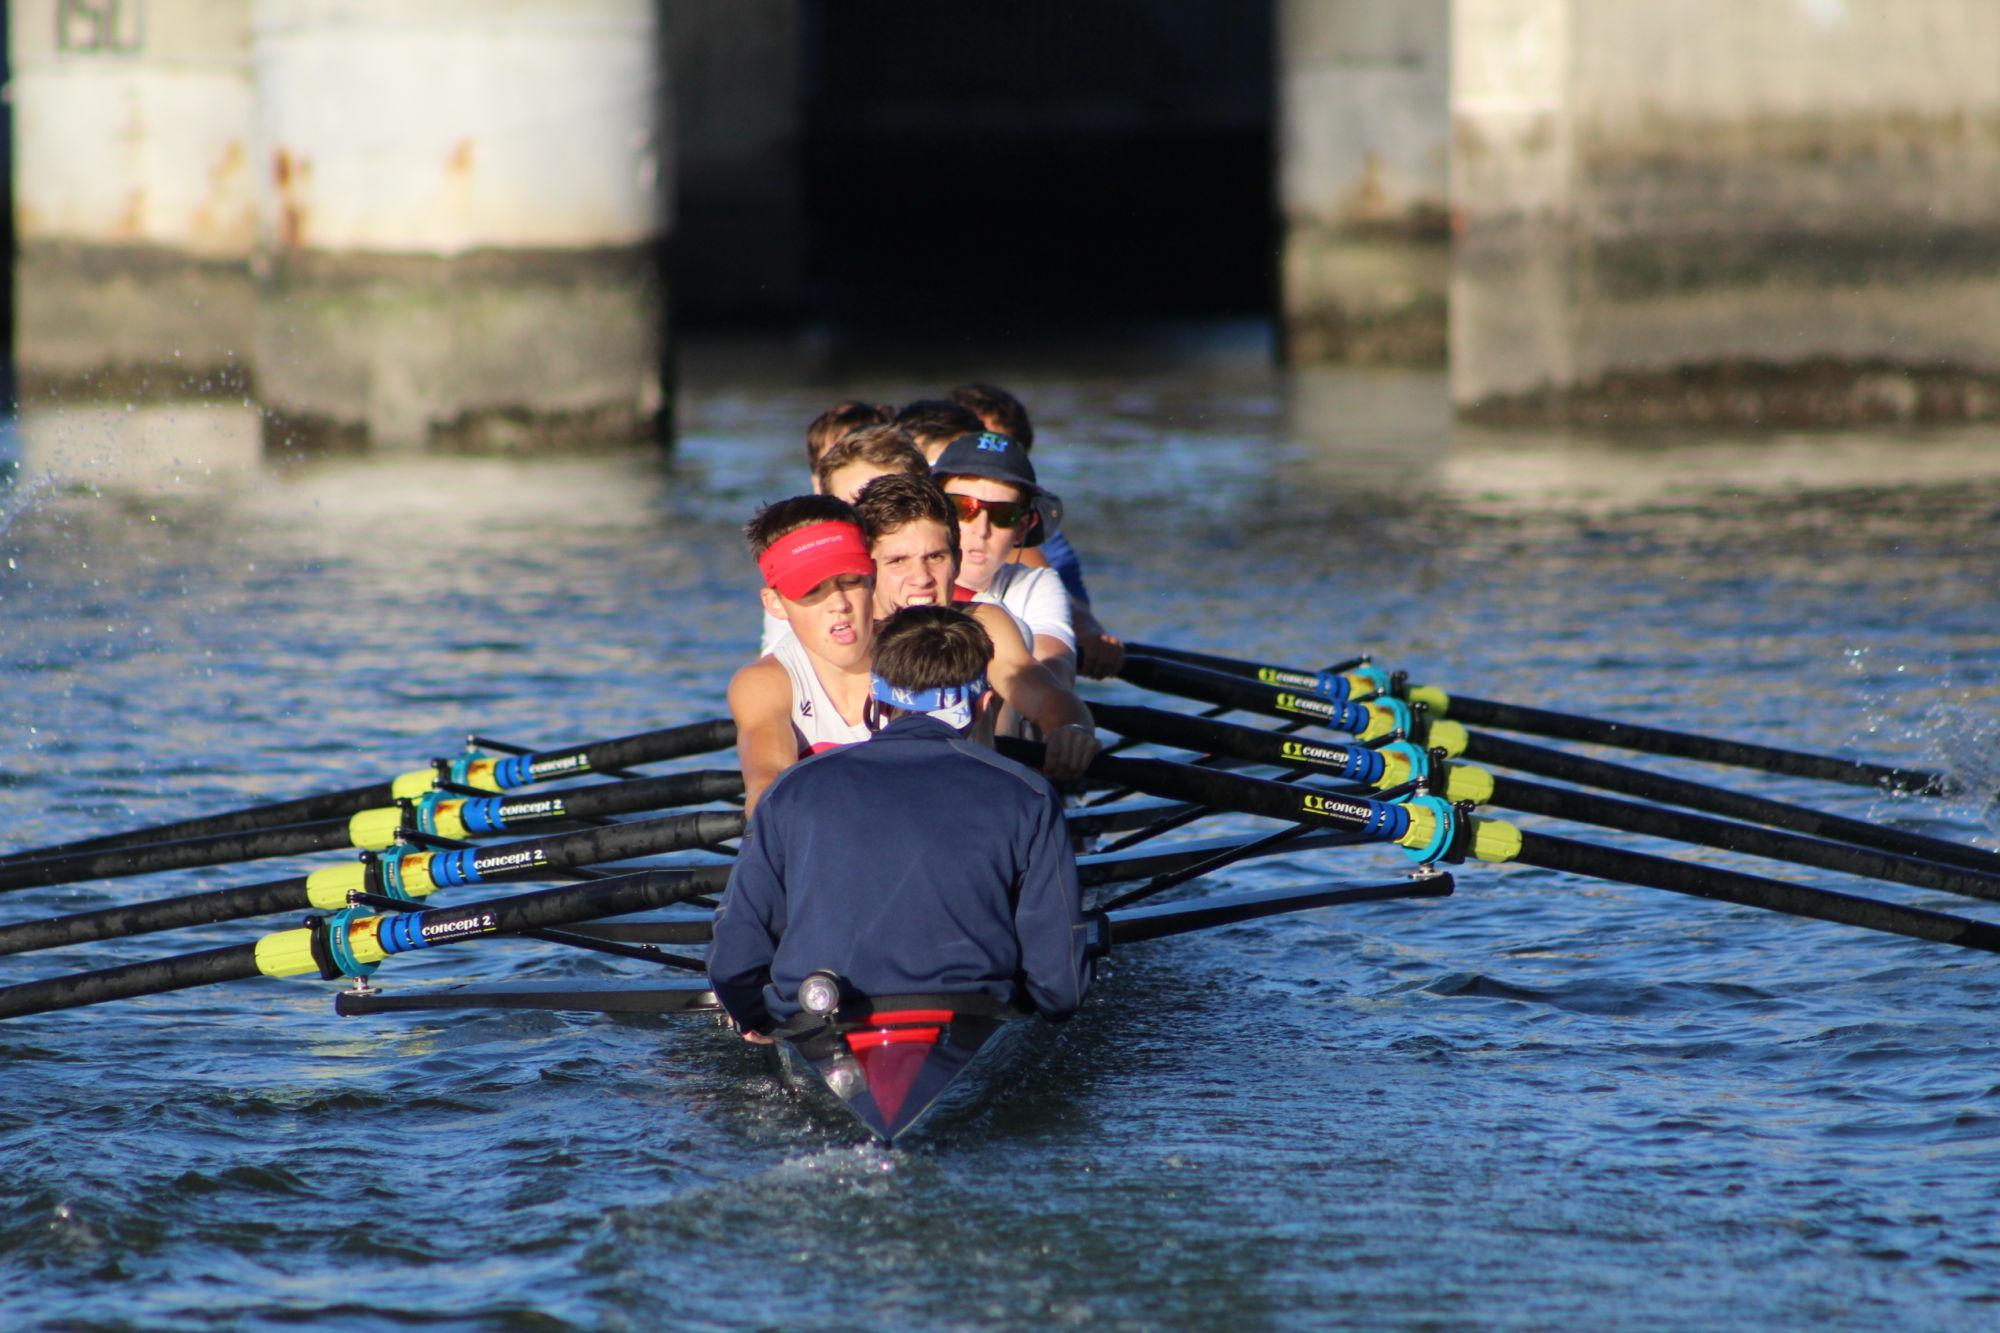 The boys' varsity rowing team shows grit and determination during practice